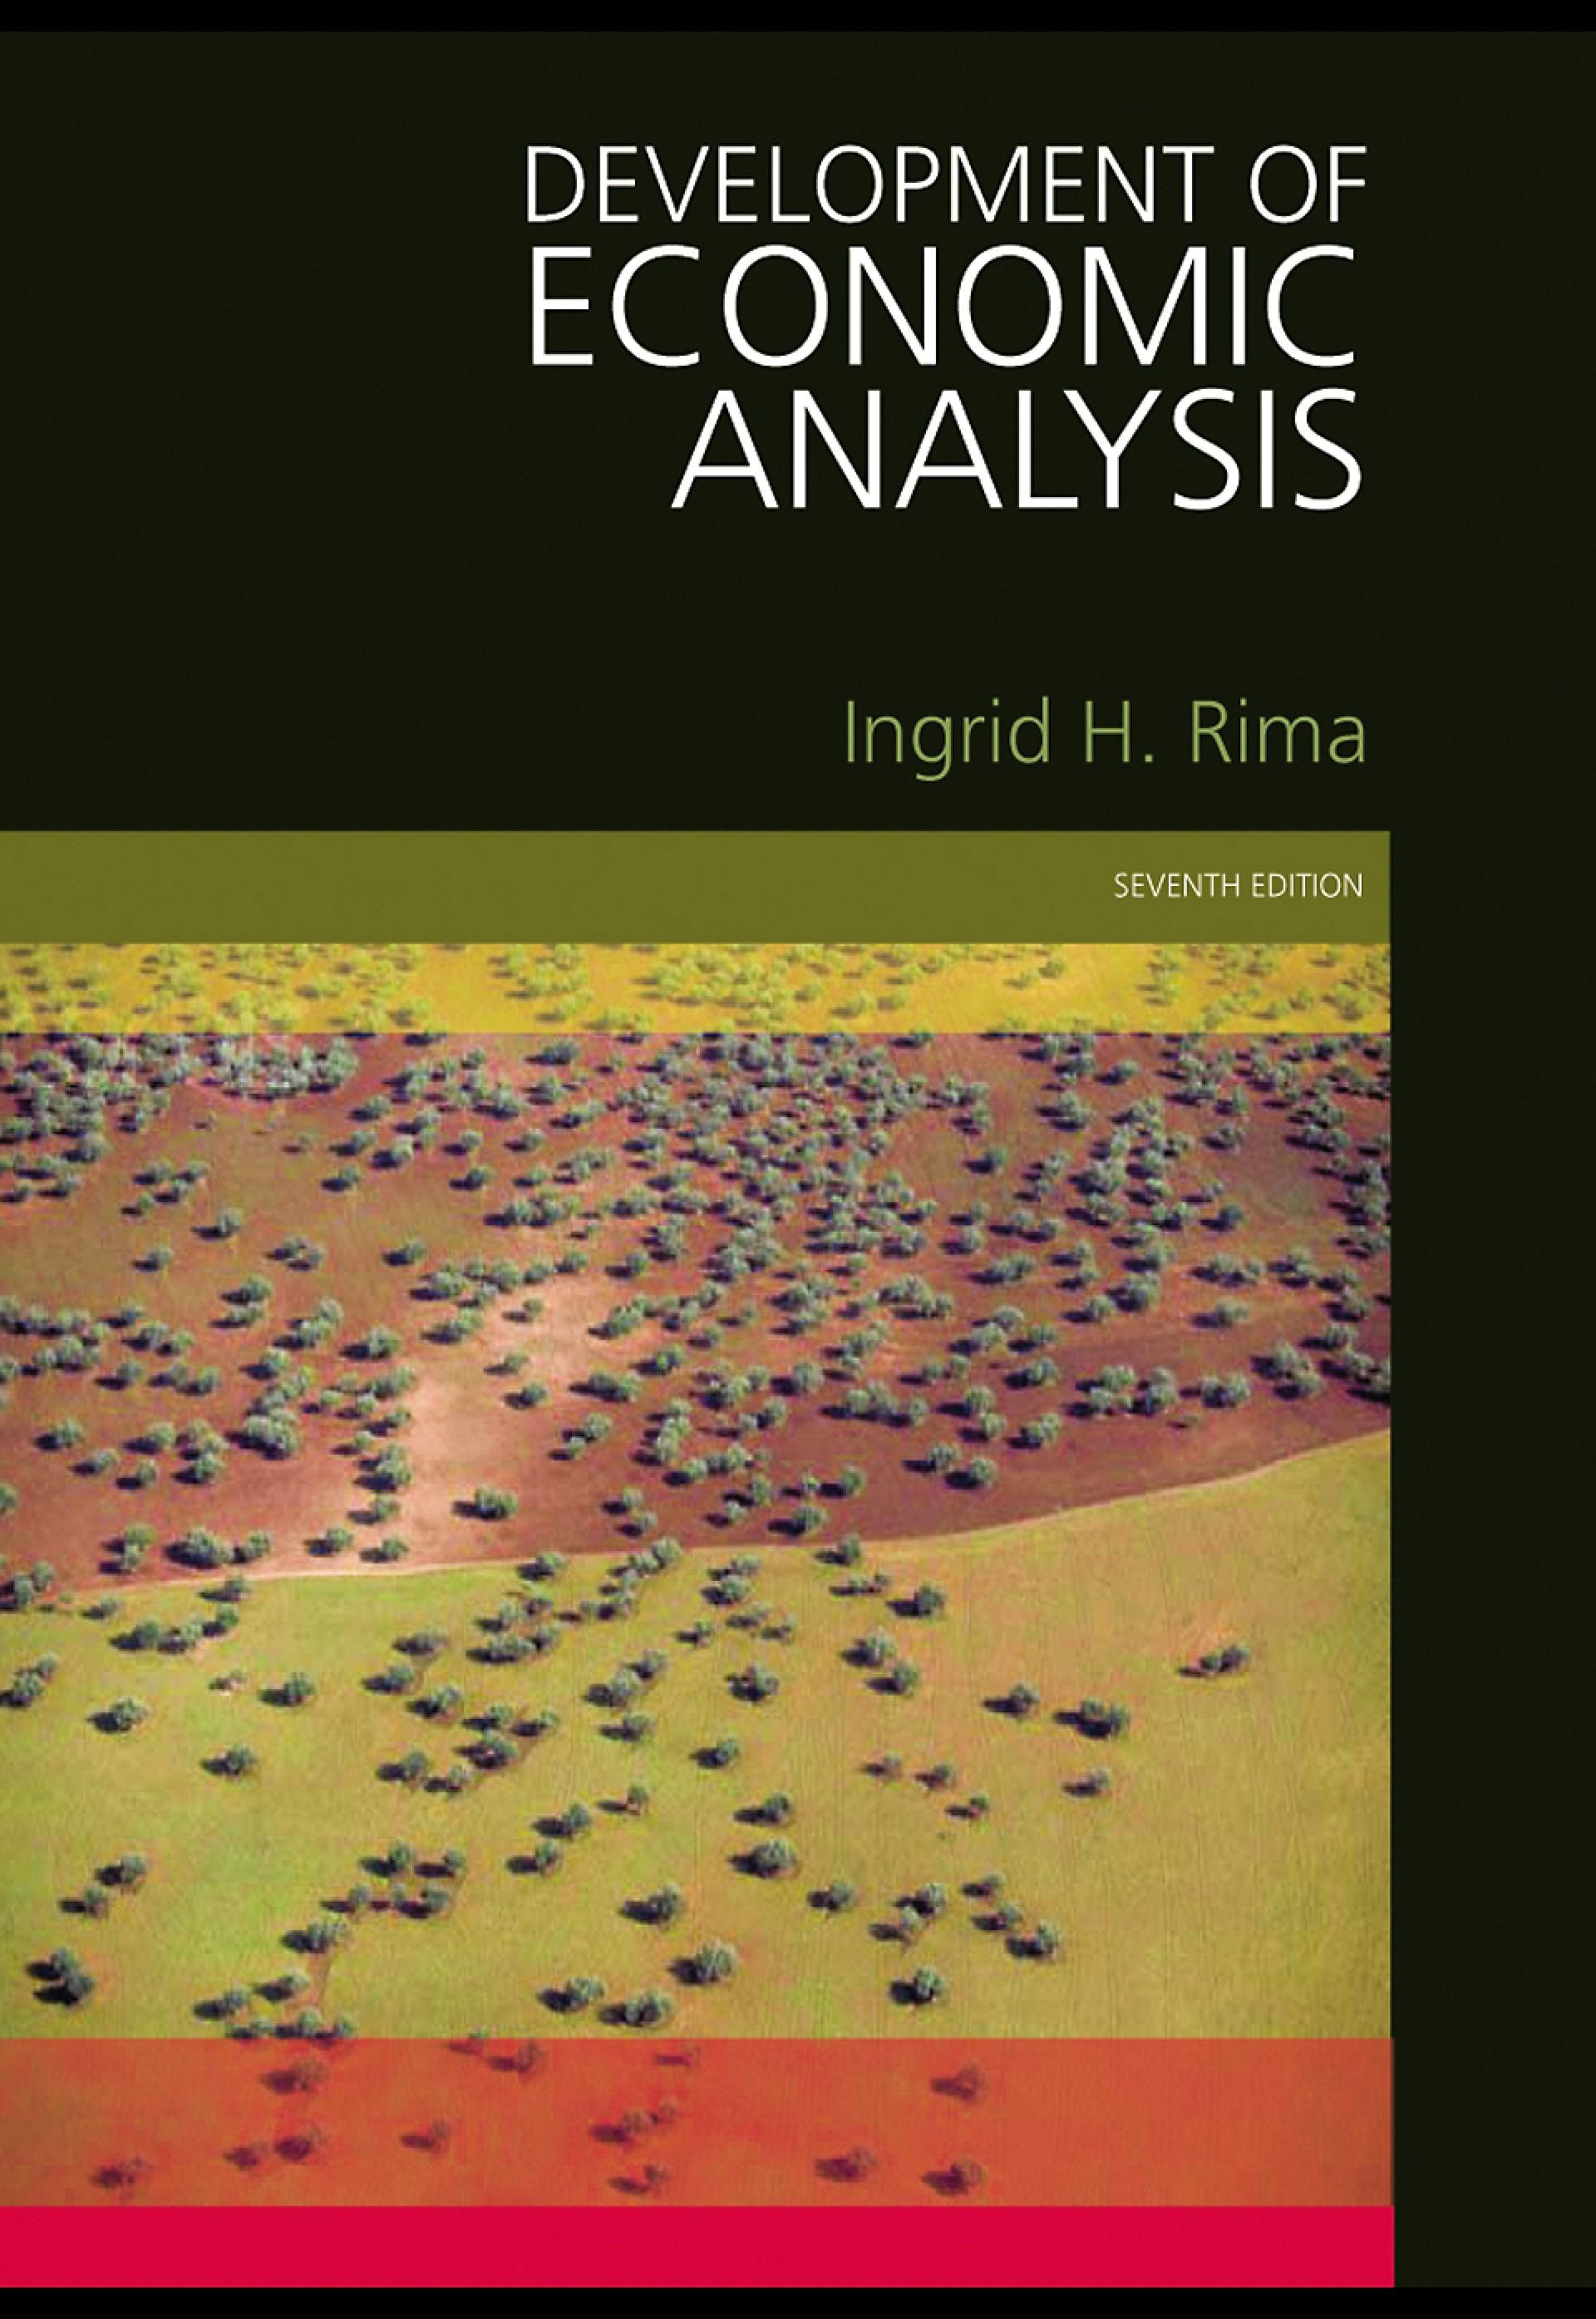 Development of Economic Analysis 7th Edition By: Ingrid H. Rima